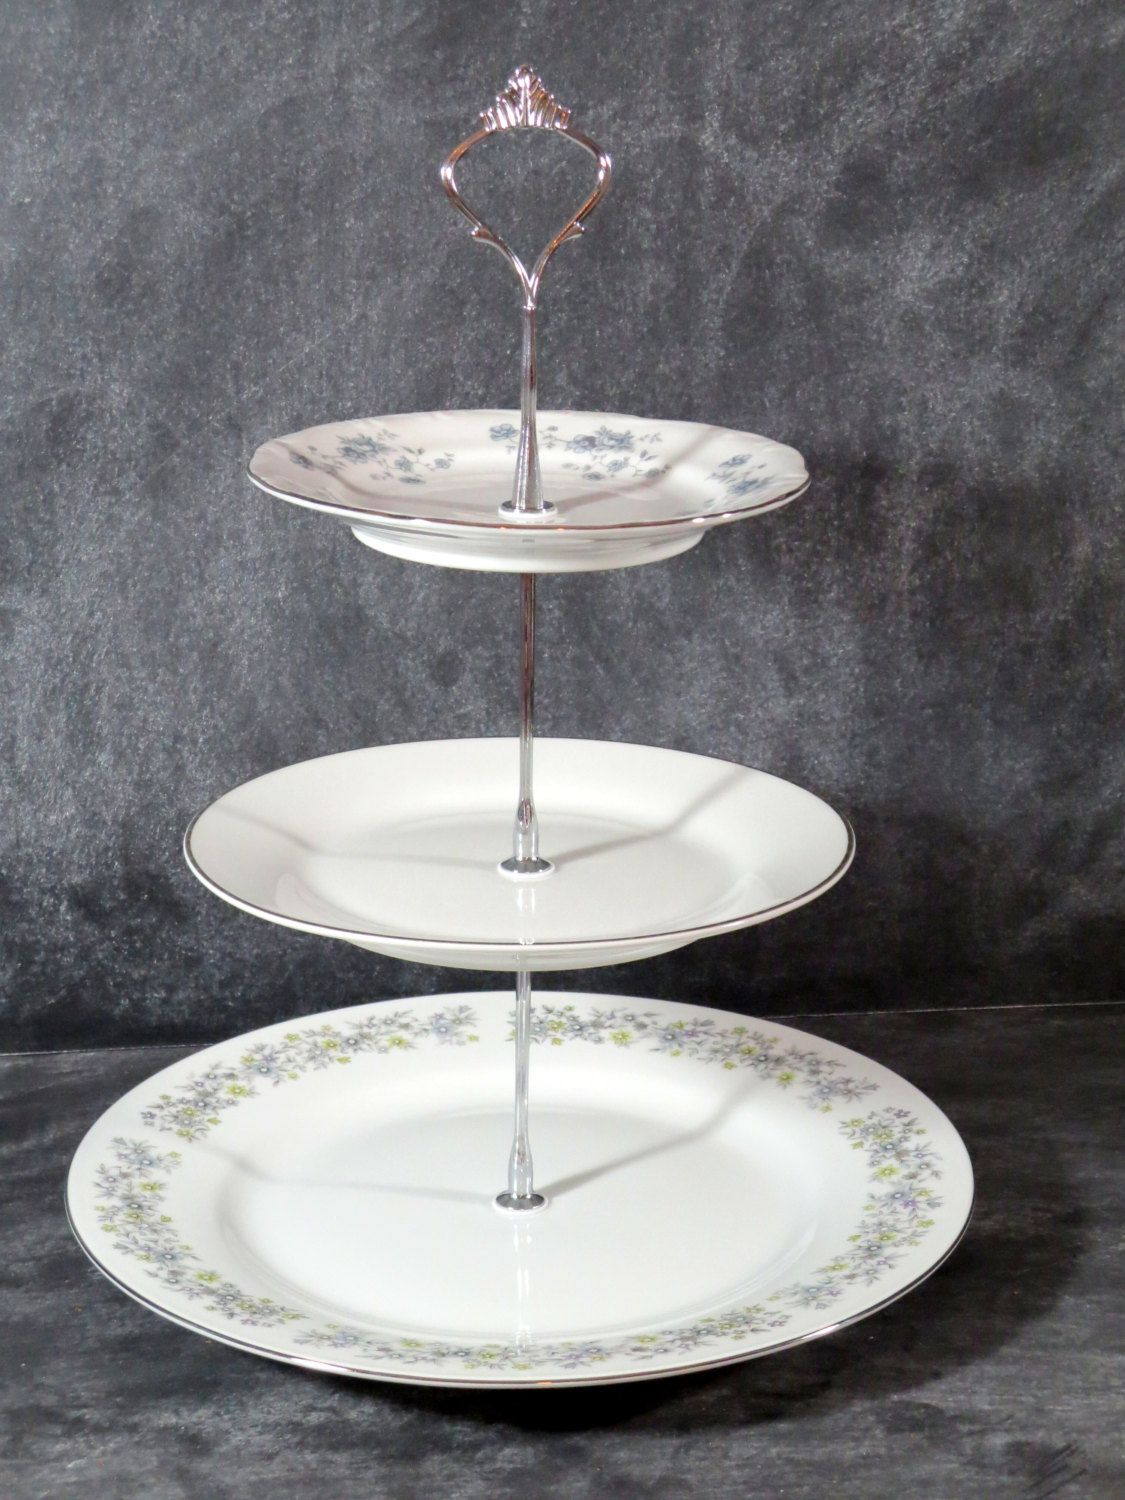 Large plates & New to DancingDishAndDecor on Etsy: Wedding Plate Stand 3 Tier China ...